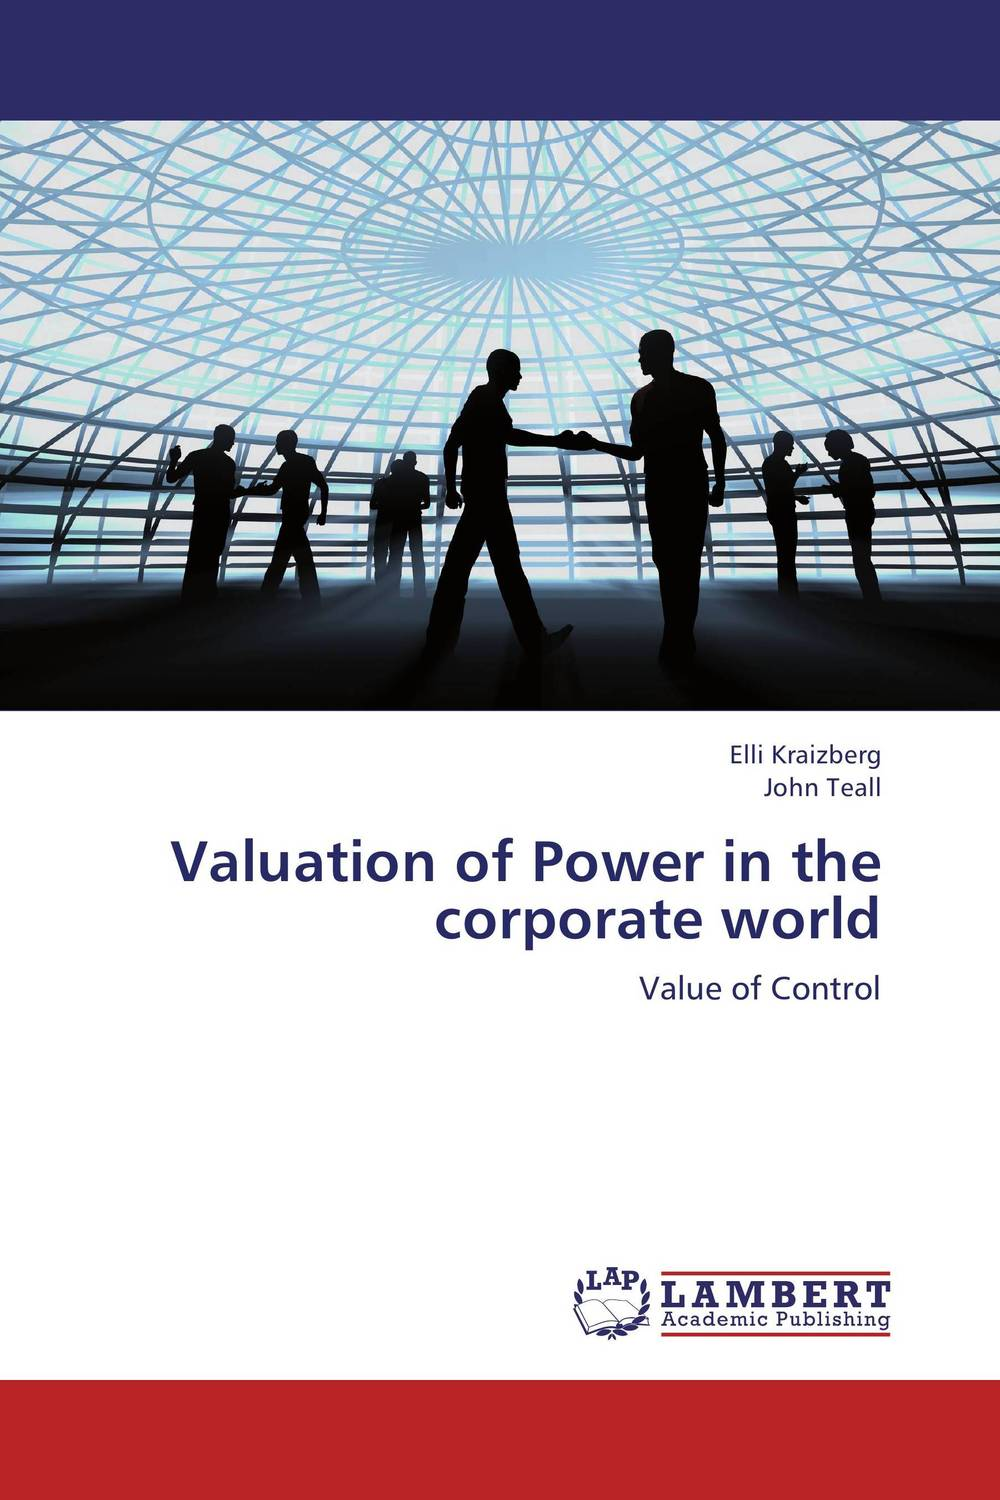 Valuation of Power in the corporate world